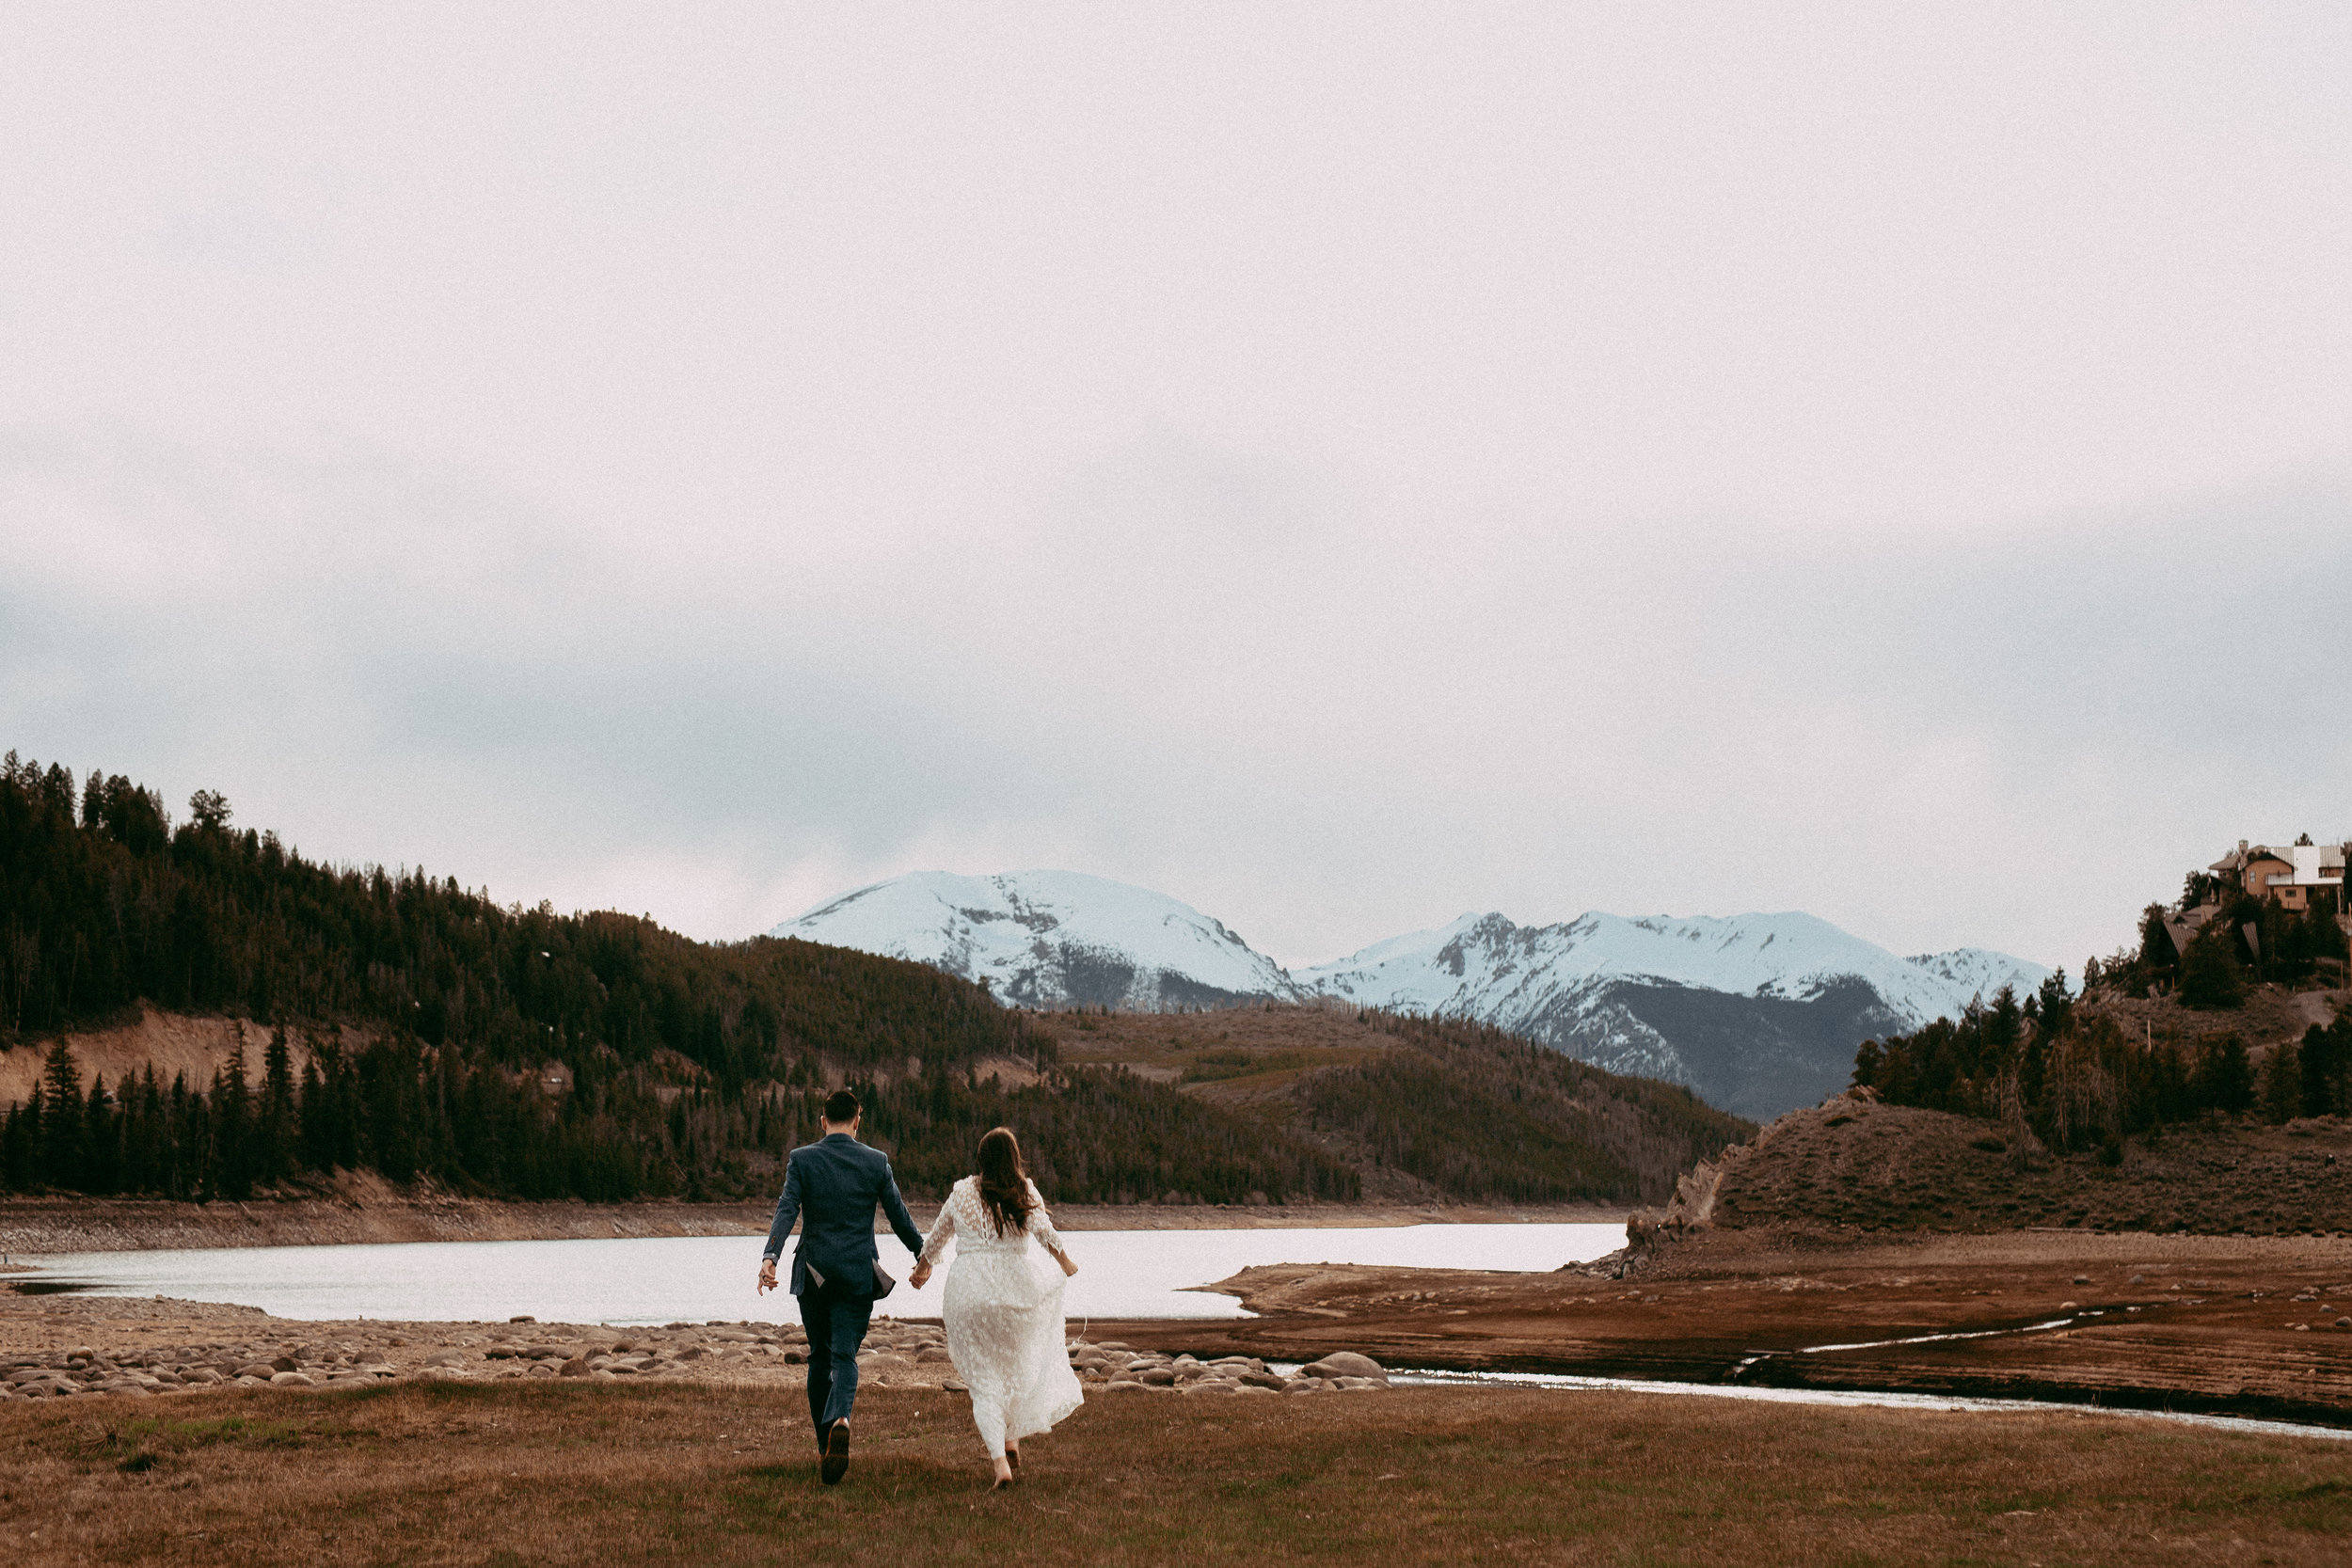 """""""Intimate"""" - $350 - Bride & groom + <20 guestsPhotography for ceremony, group/family shots, and couple's portrait session.Minimum of 70+ edited images"""